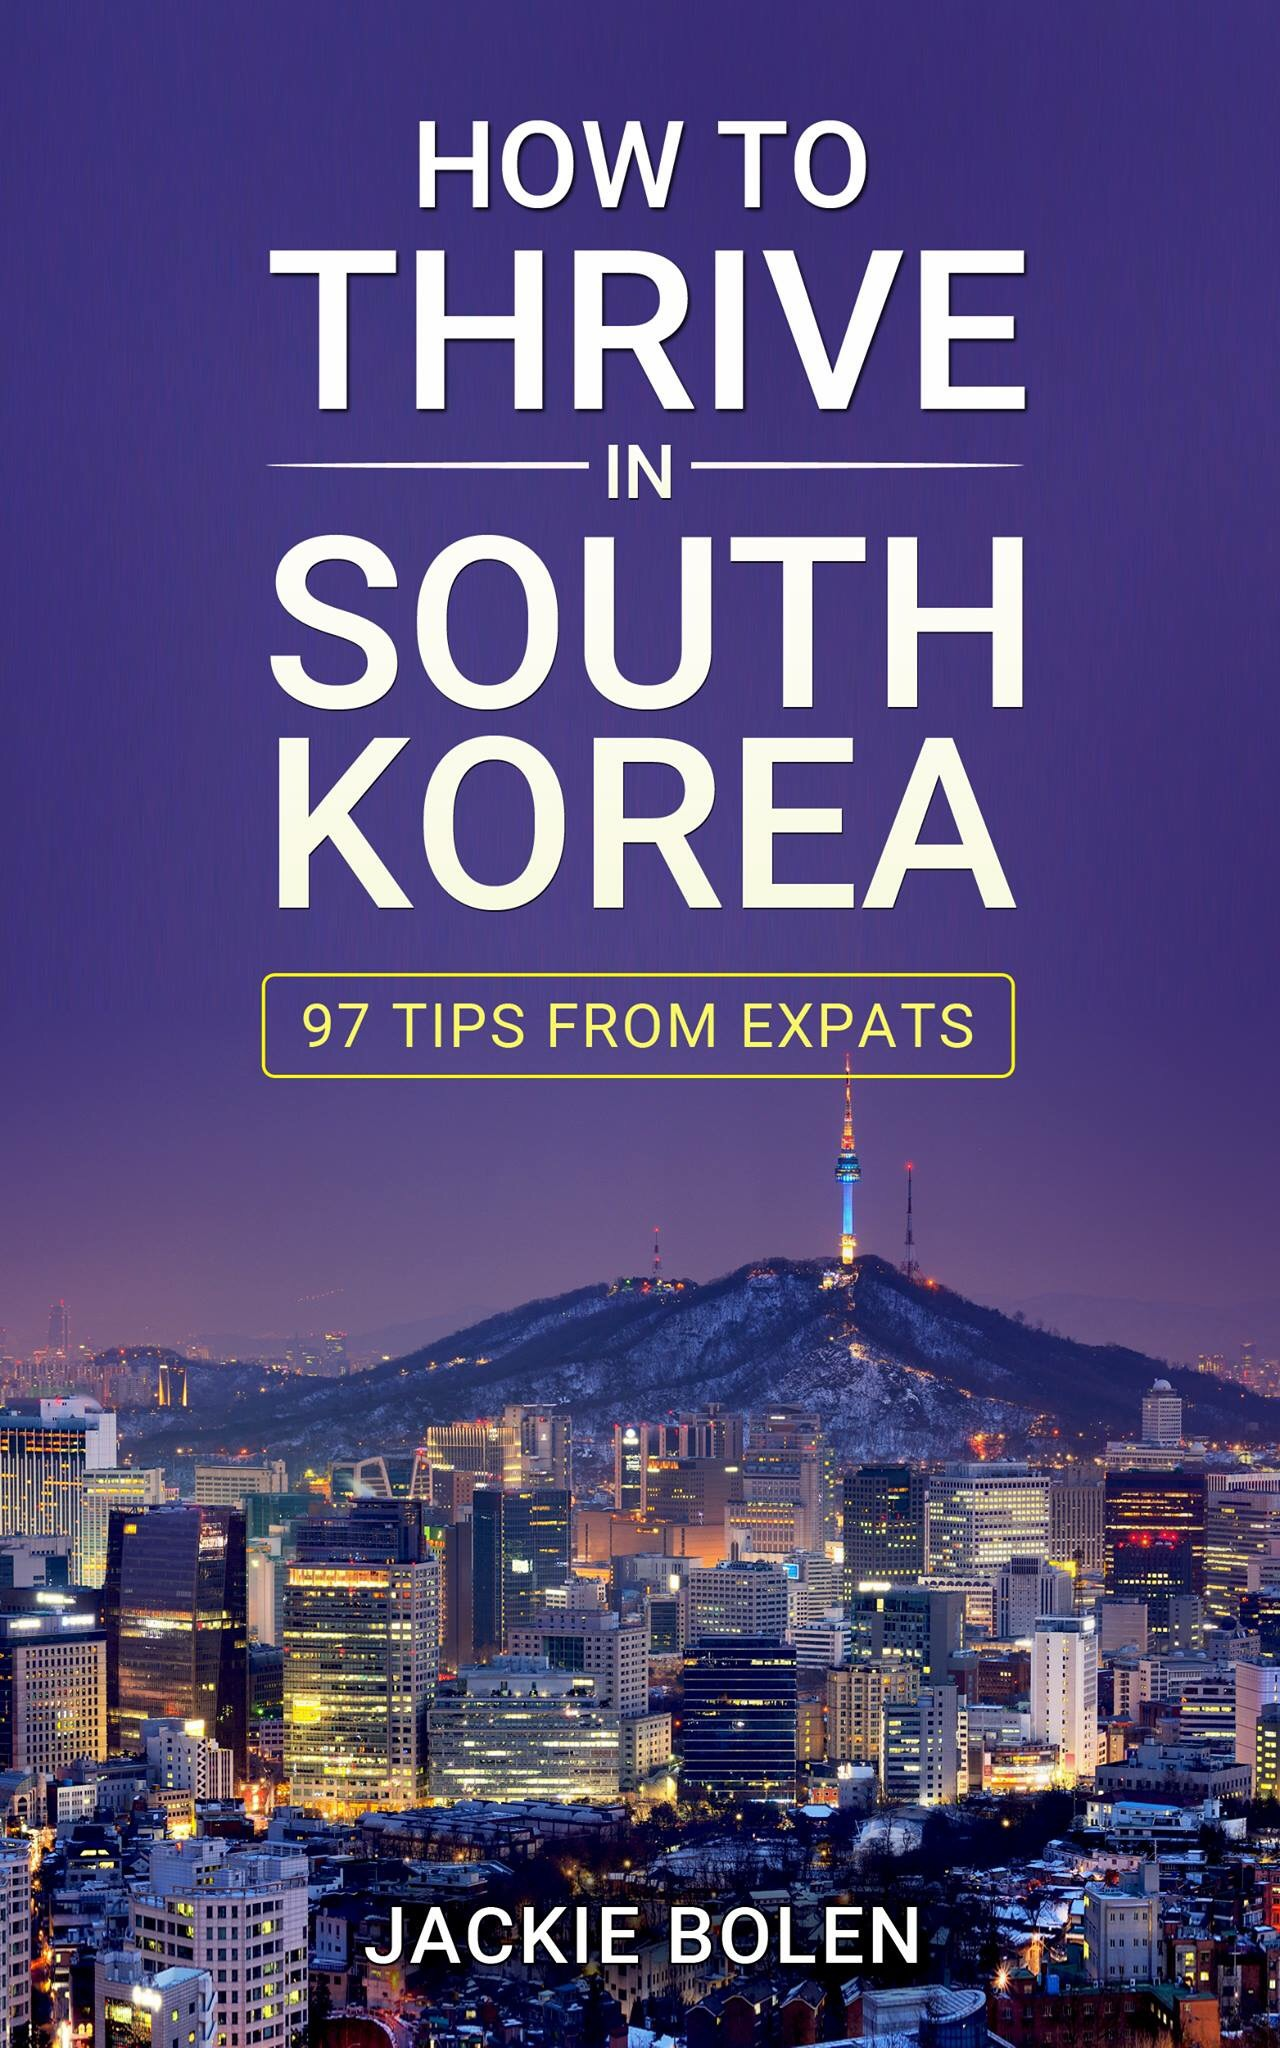 Beyond Surviving South Korea: Top 5 Tips for an Awesome Life